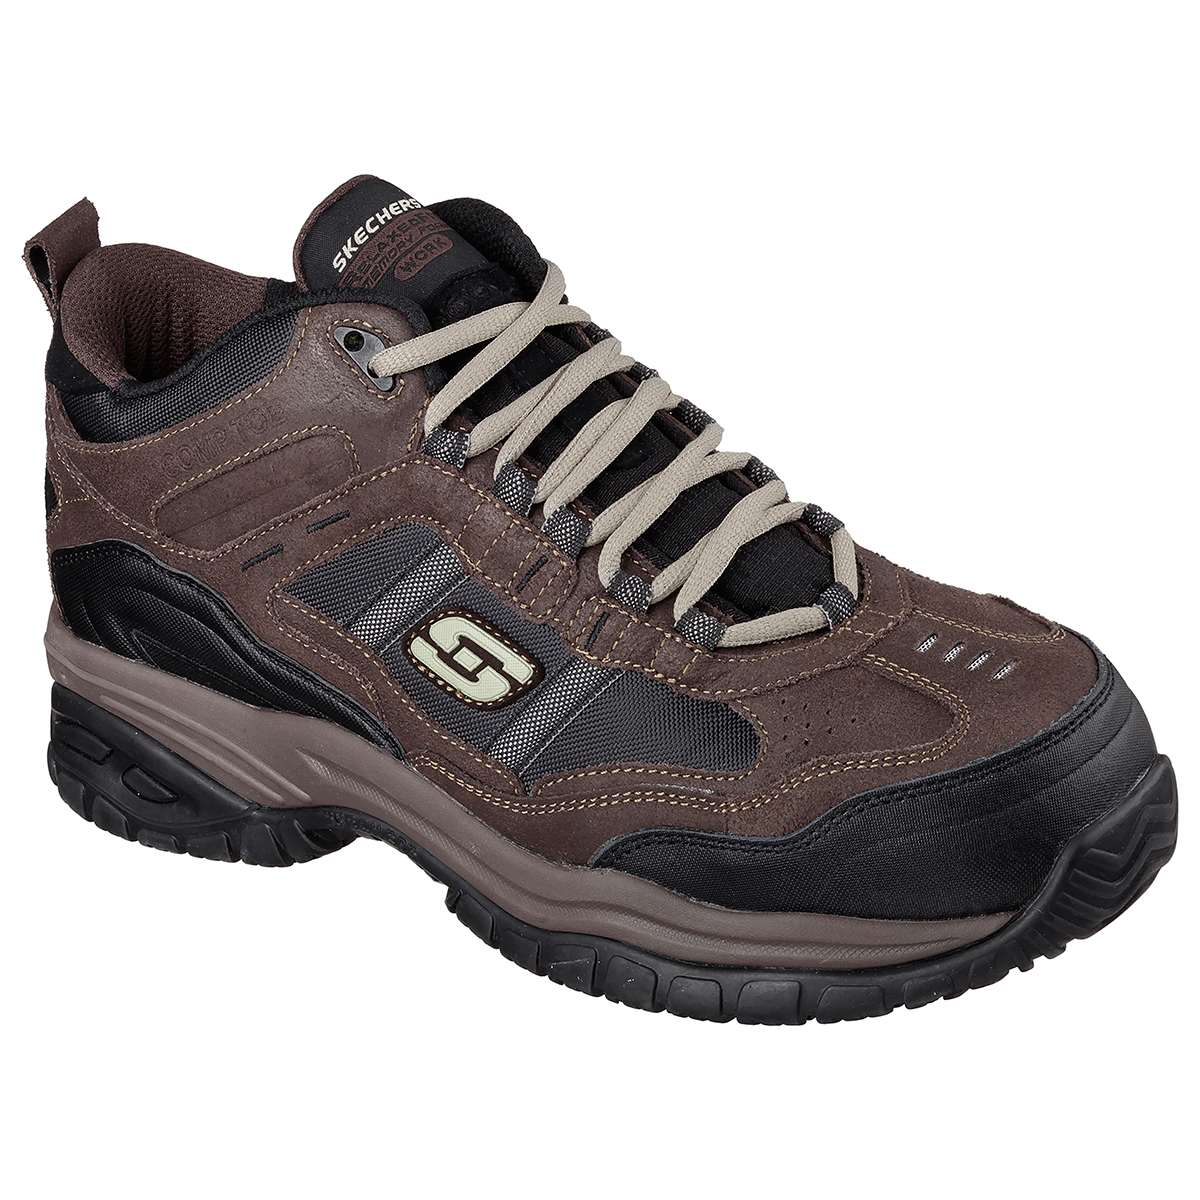 Details about Skechers Men's Work Relaxed Fit: Soft Stride Canopy Composite Toe Shoes Brown